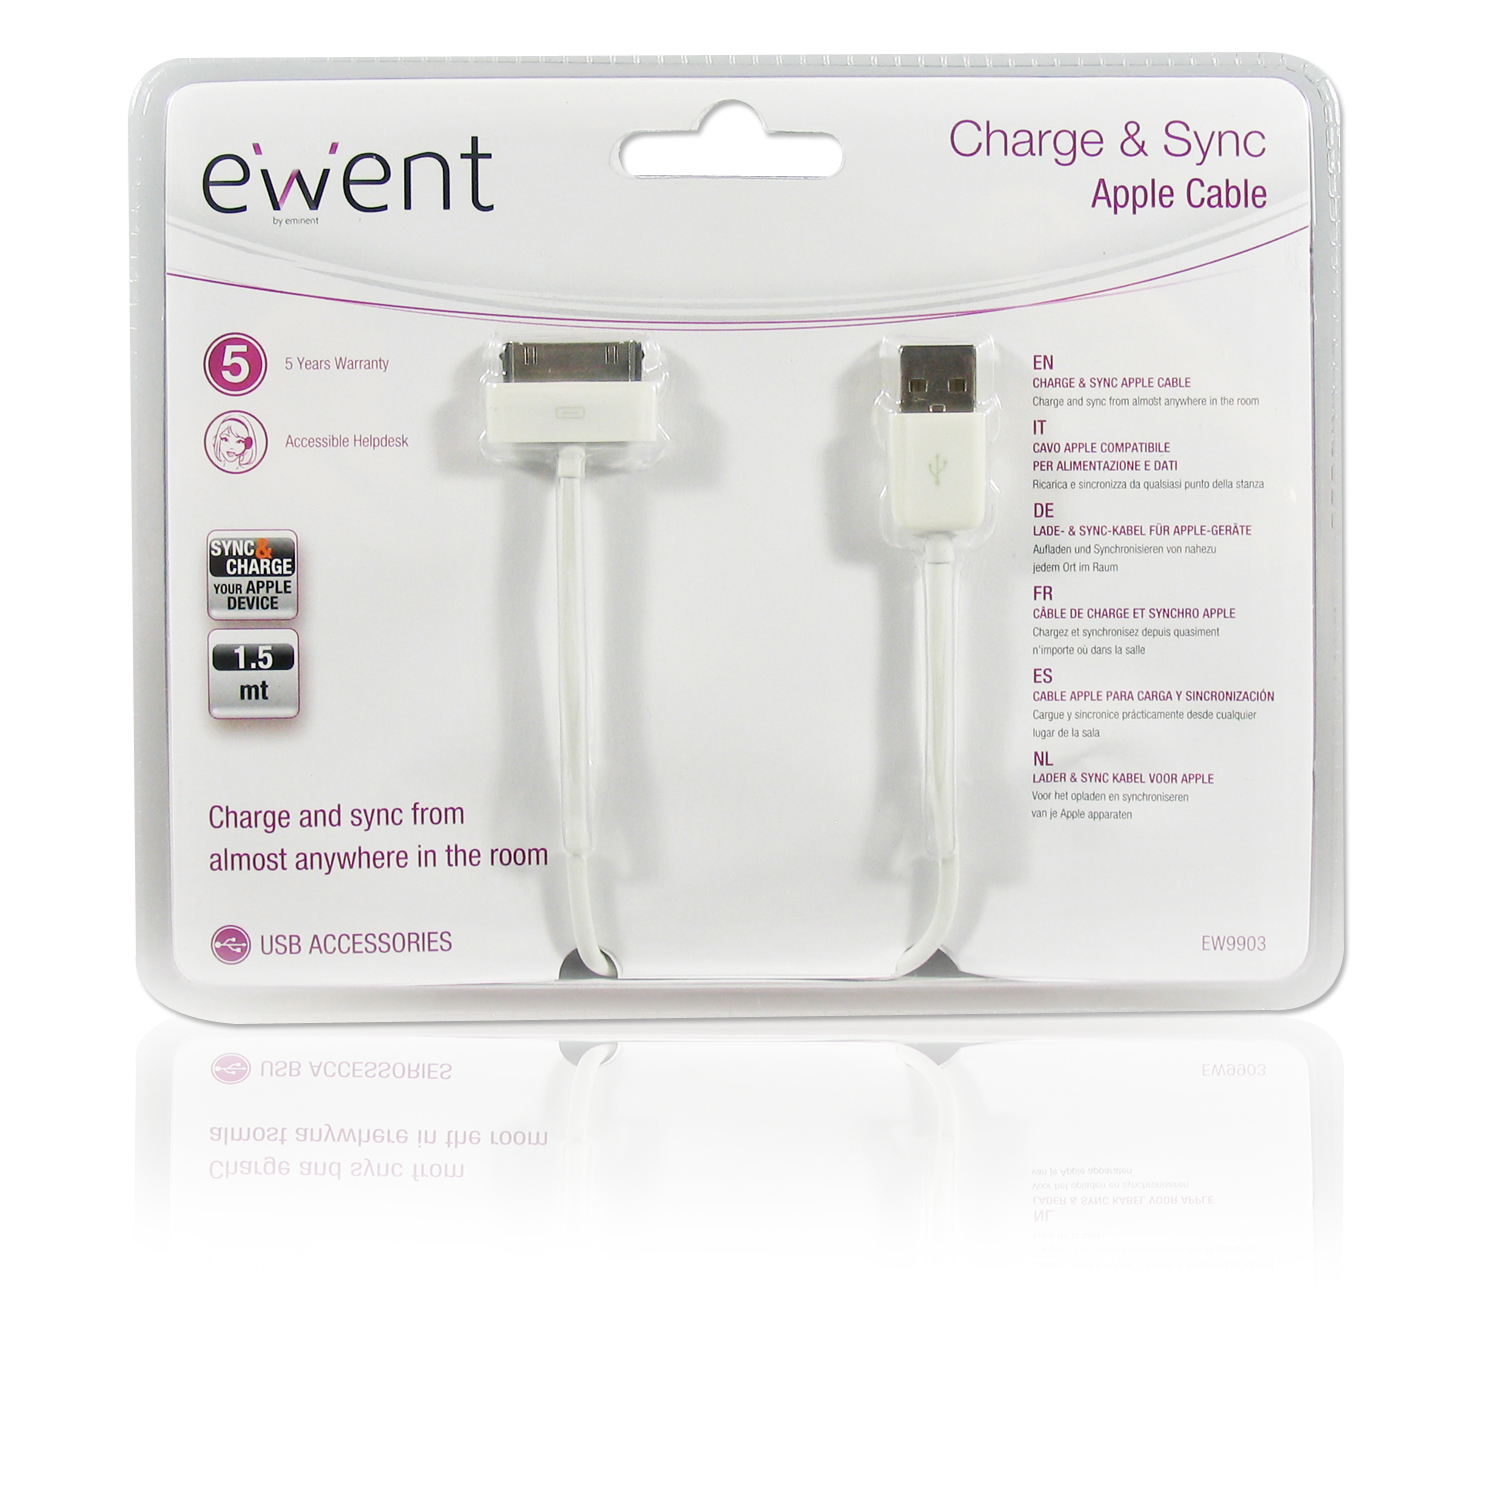 CAVO EWENT IPHONE 4 2.1A 1MT